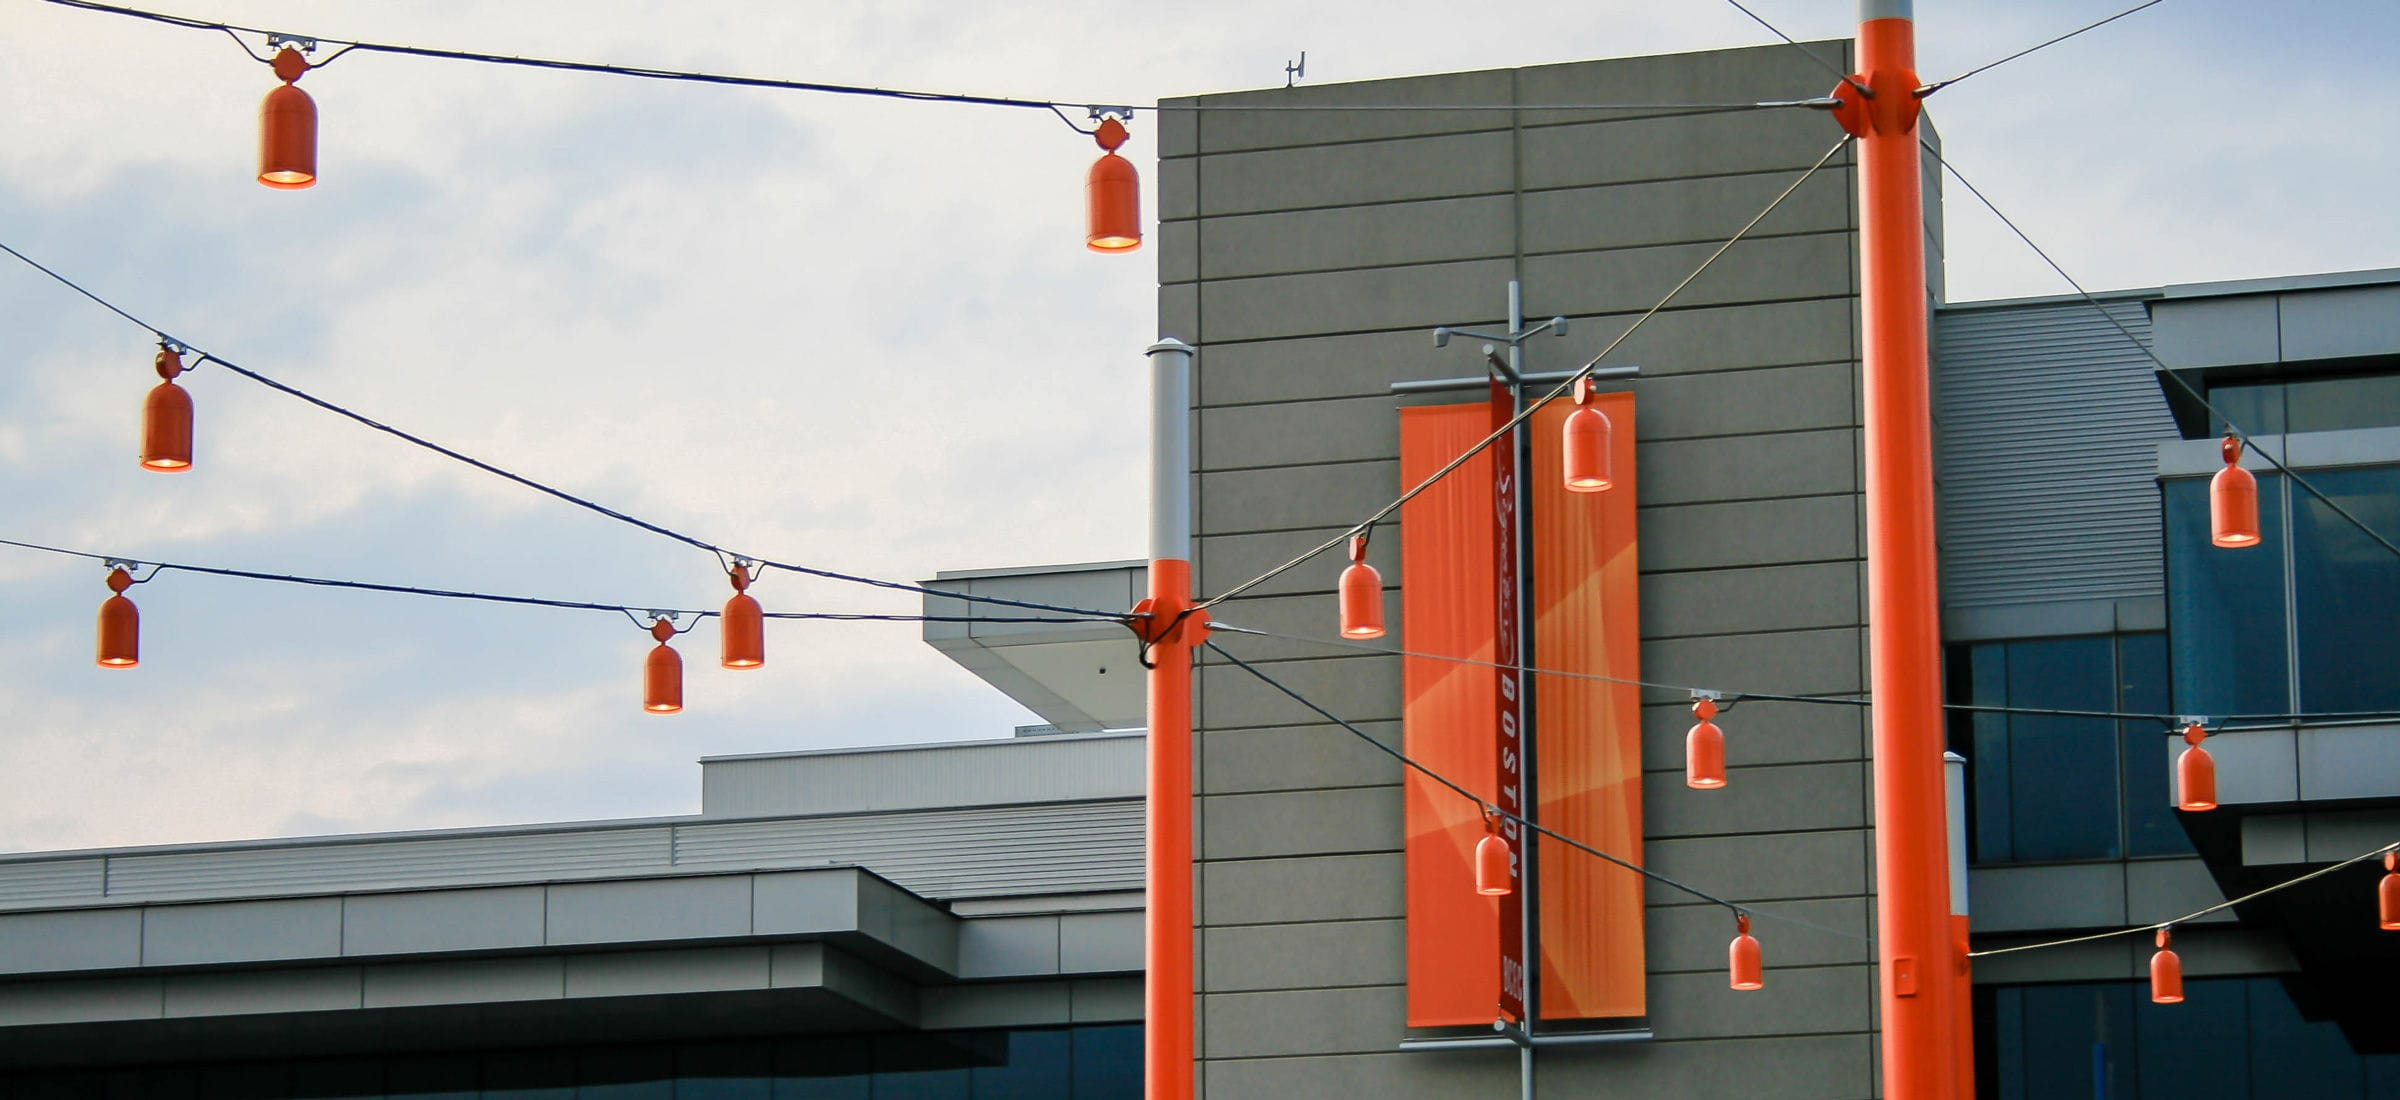 LED cable lighting / linear / outdoor / for public areas - BOSTON ...:... LED cable lighting / linear / outdoor / for public areas BOSTON  CONVENTION CENTER RONSTAN,Lighting